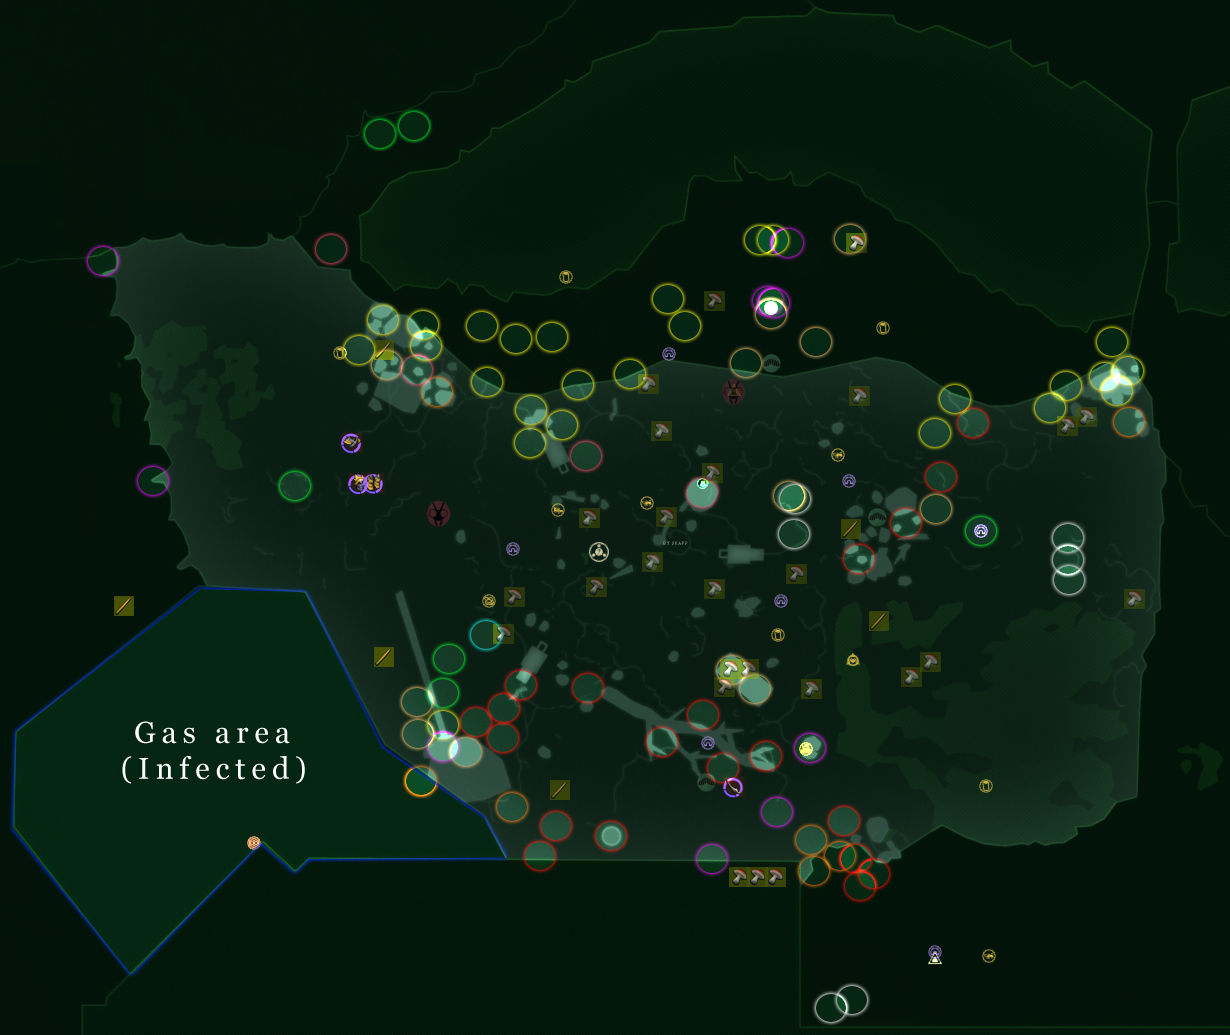 Grounded Full Map with Location Marks (Spider, Bugs, Mites, Grubs, Infected)